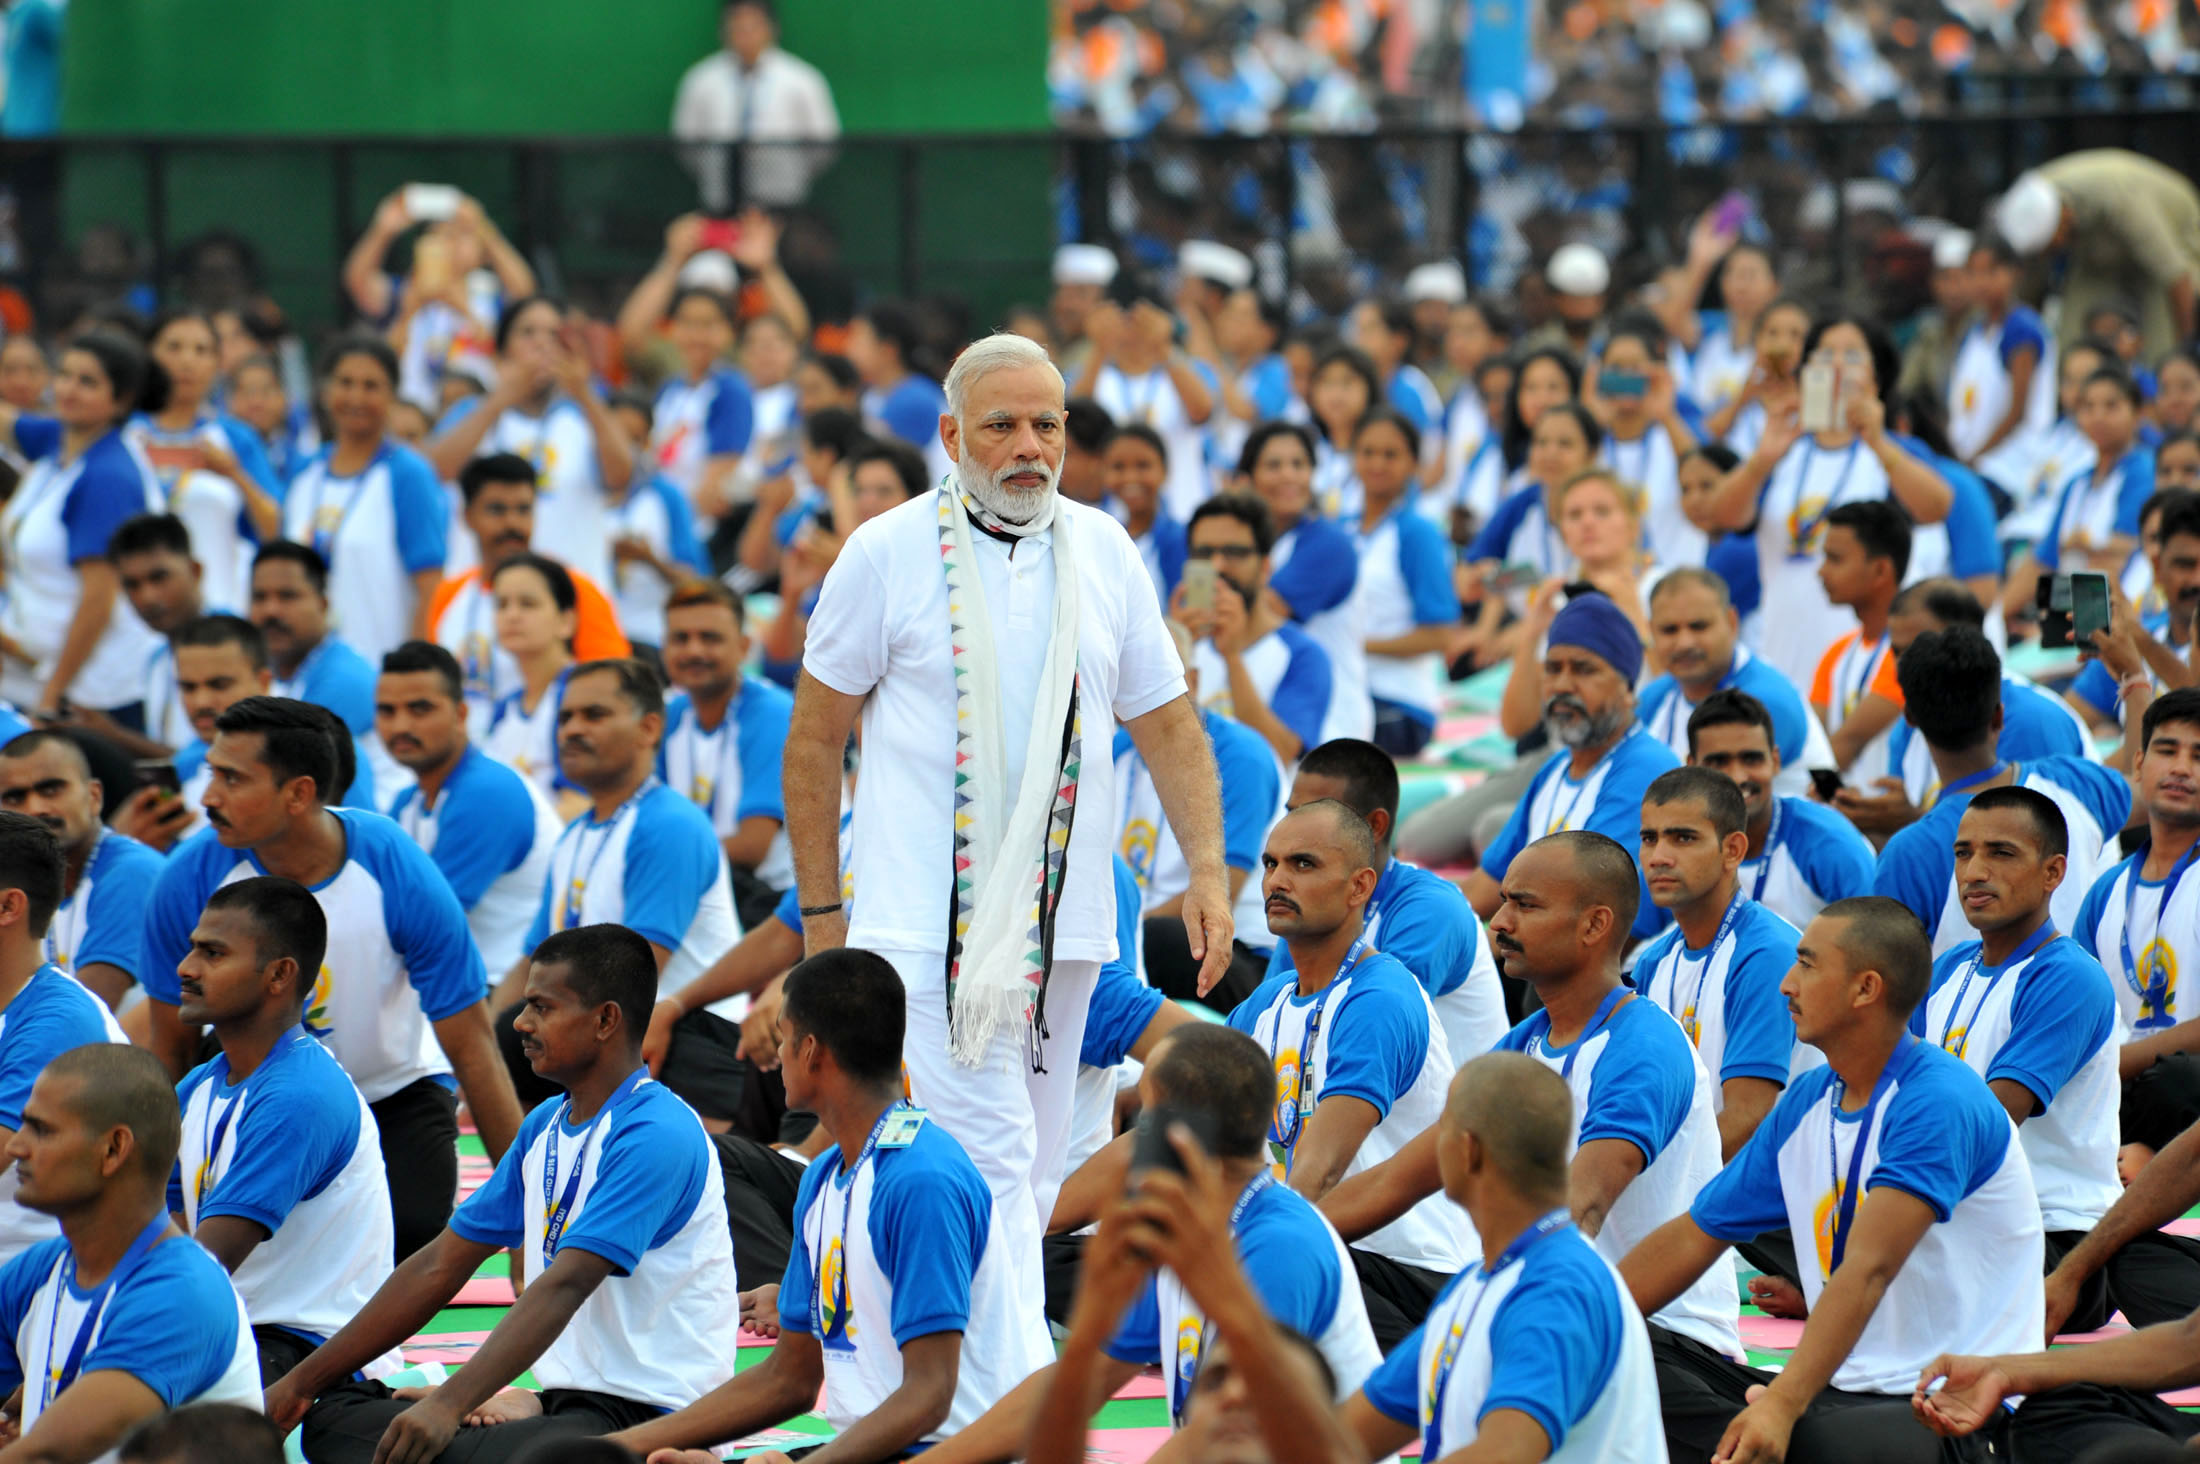 Indian Prime Minister Narendra Modi with the participants during the mass yoga demonstration at the Capitol Complex, Chandigarh, on the occasion of second International Day of Yoga on June 21, 2016.